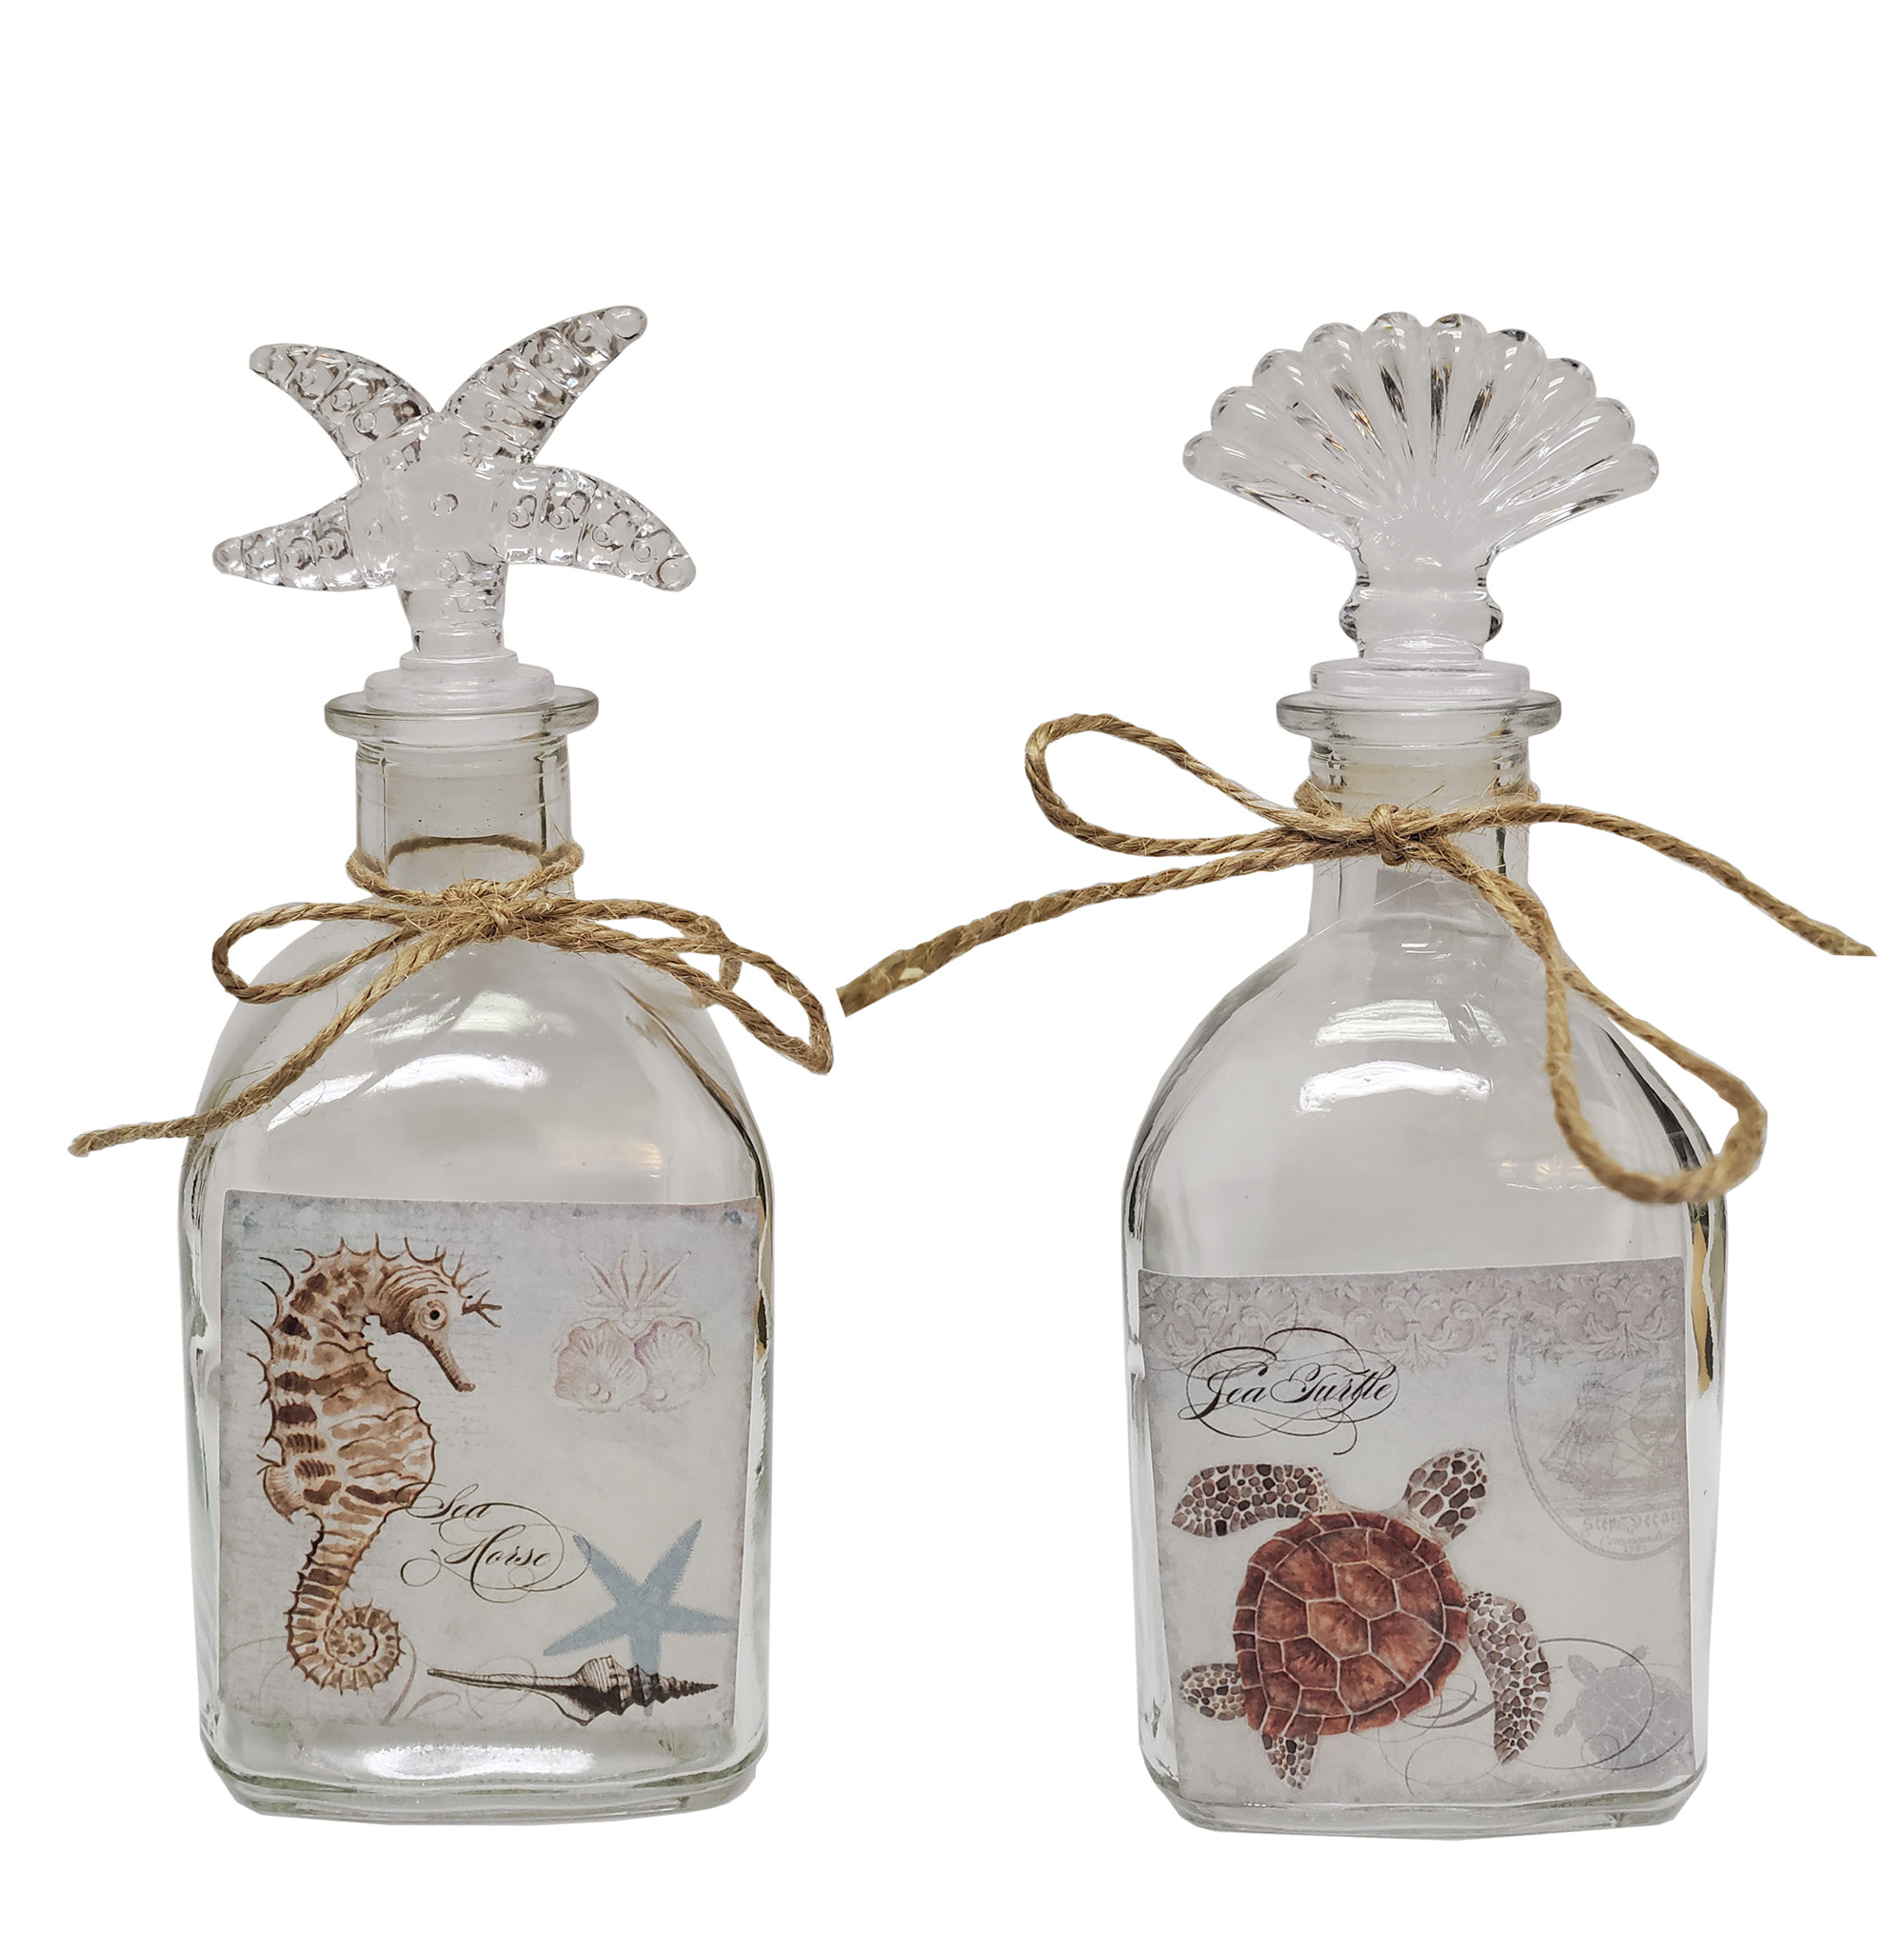 seahorse and trutle decorative sand keeping jars